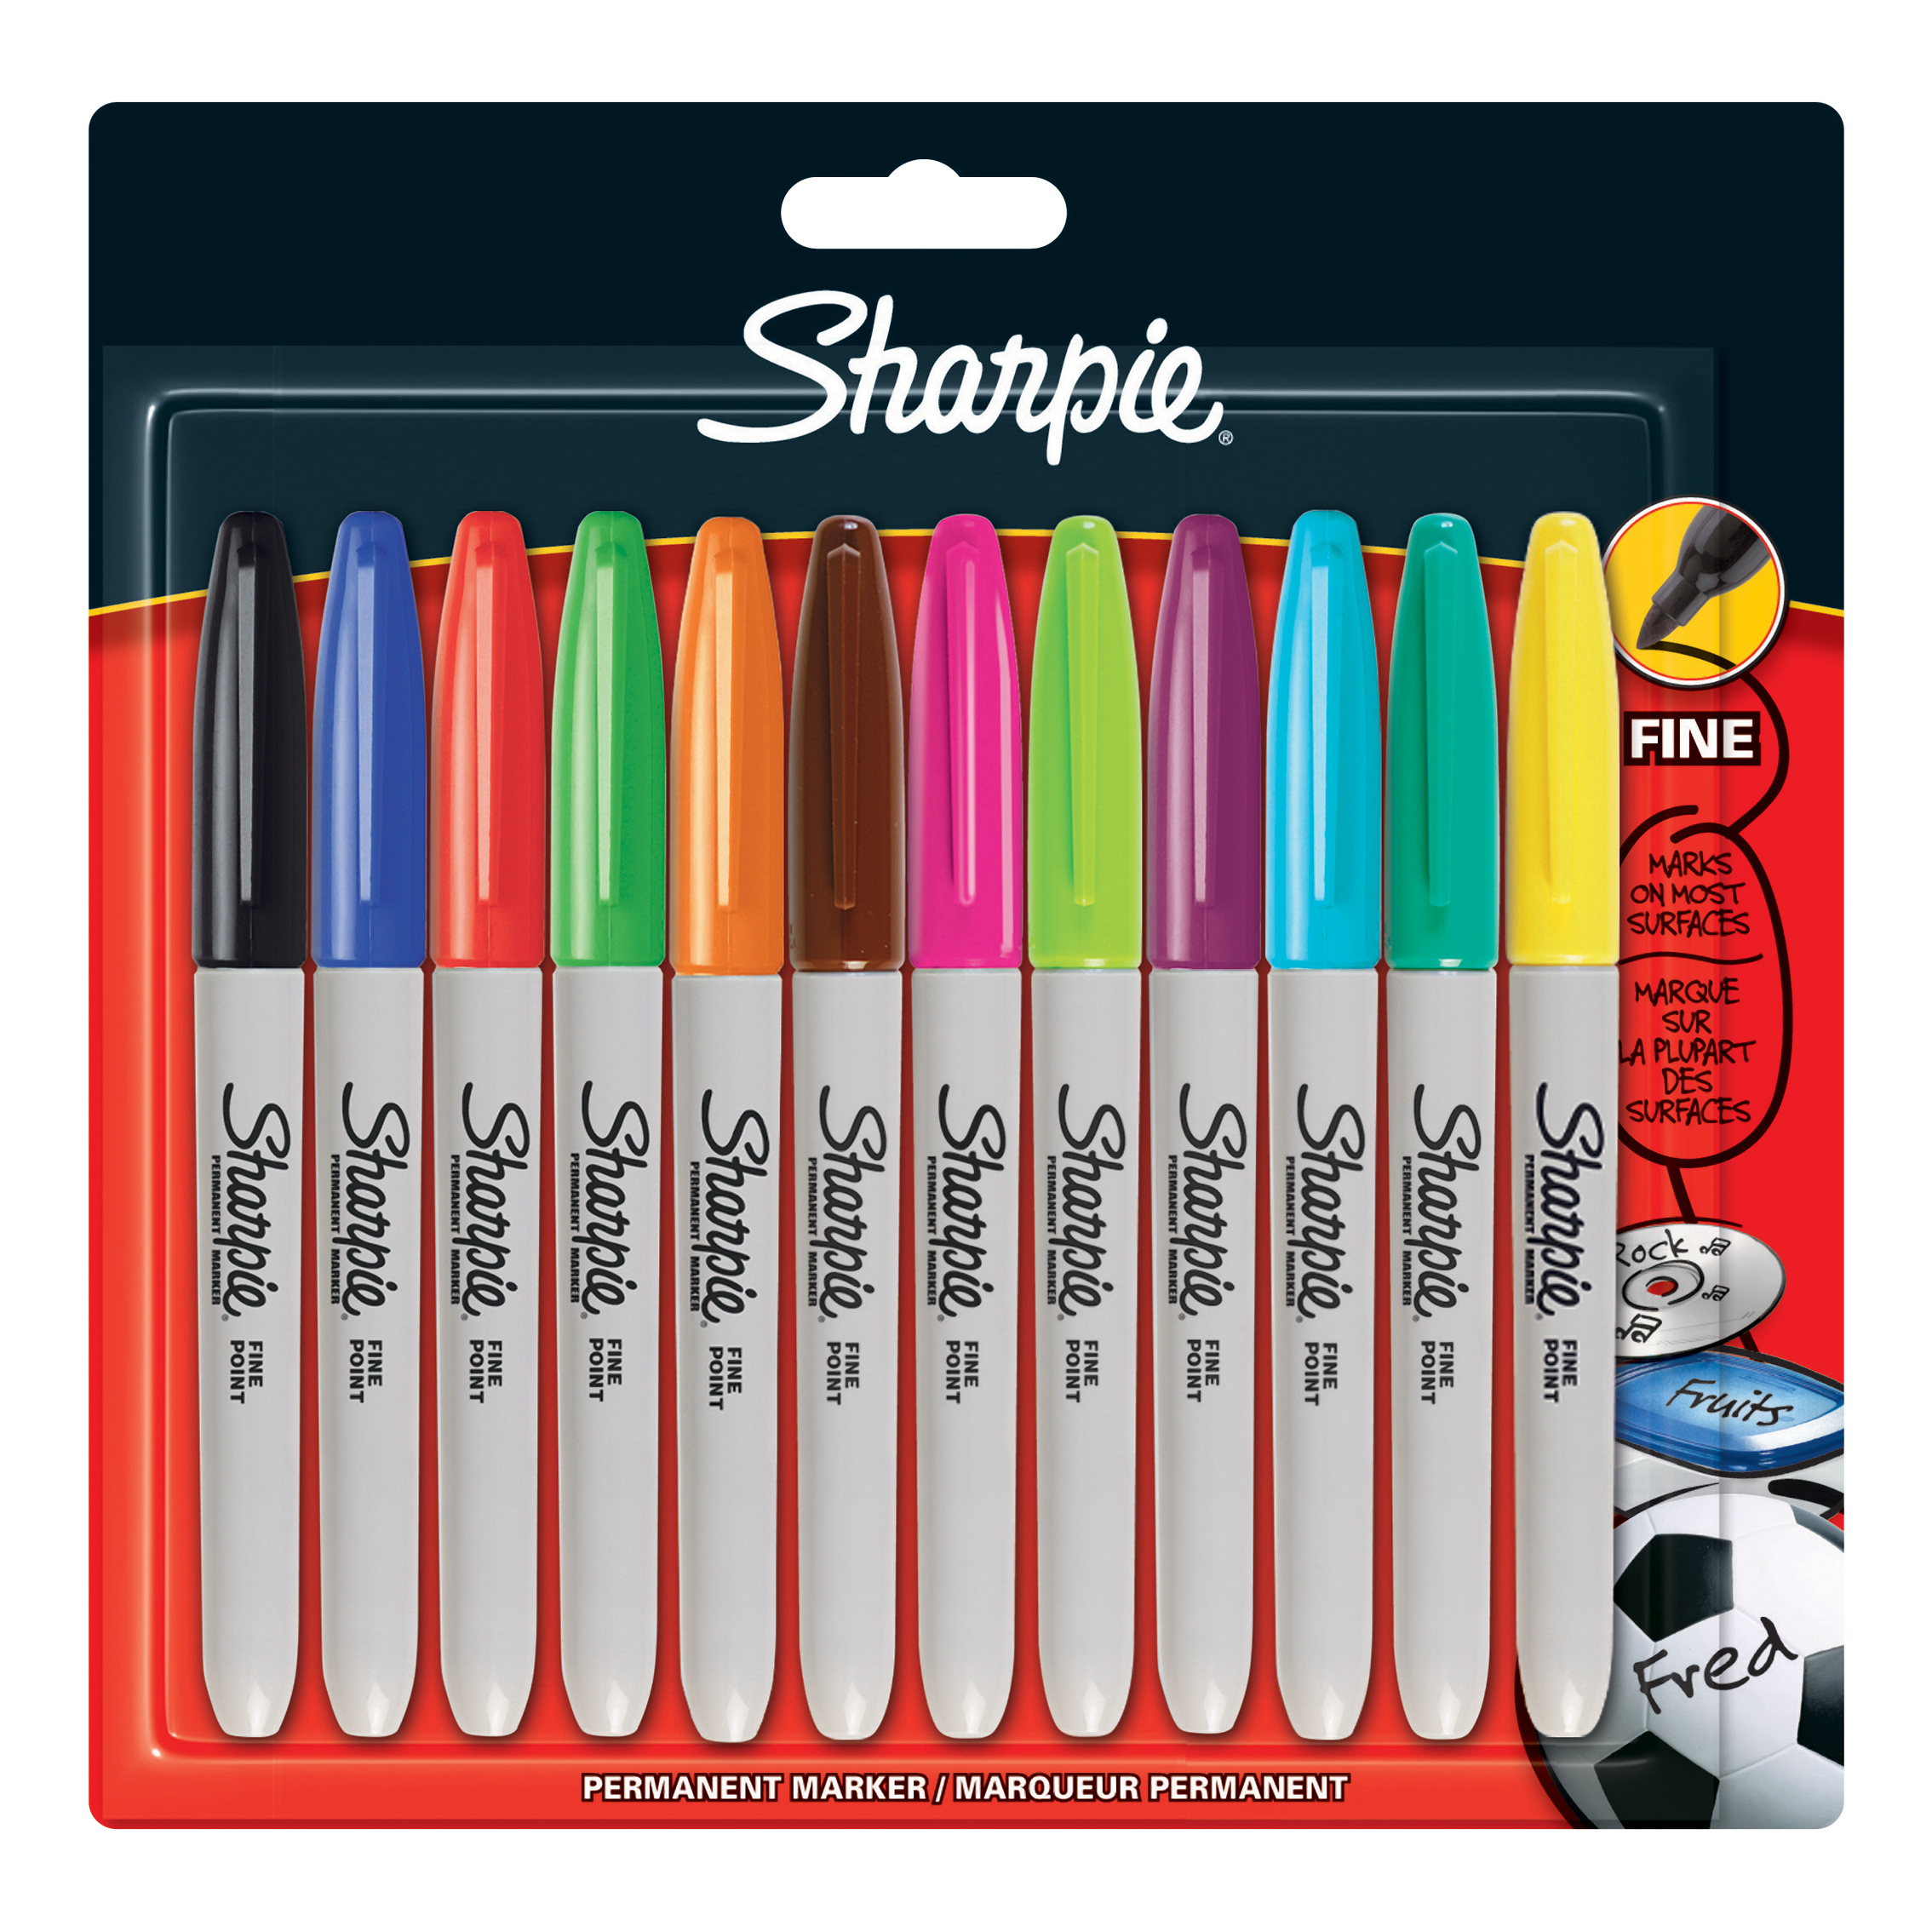 Sharpie Permanent Marker Fine Tip 0.9mm Assorted Ref 1986438 [Pack 12]